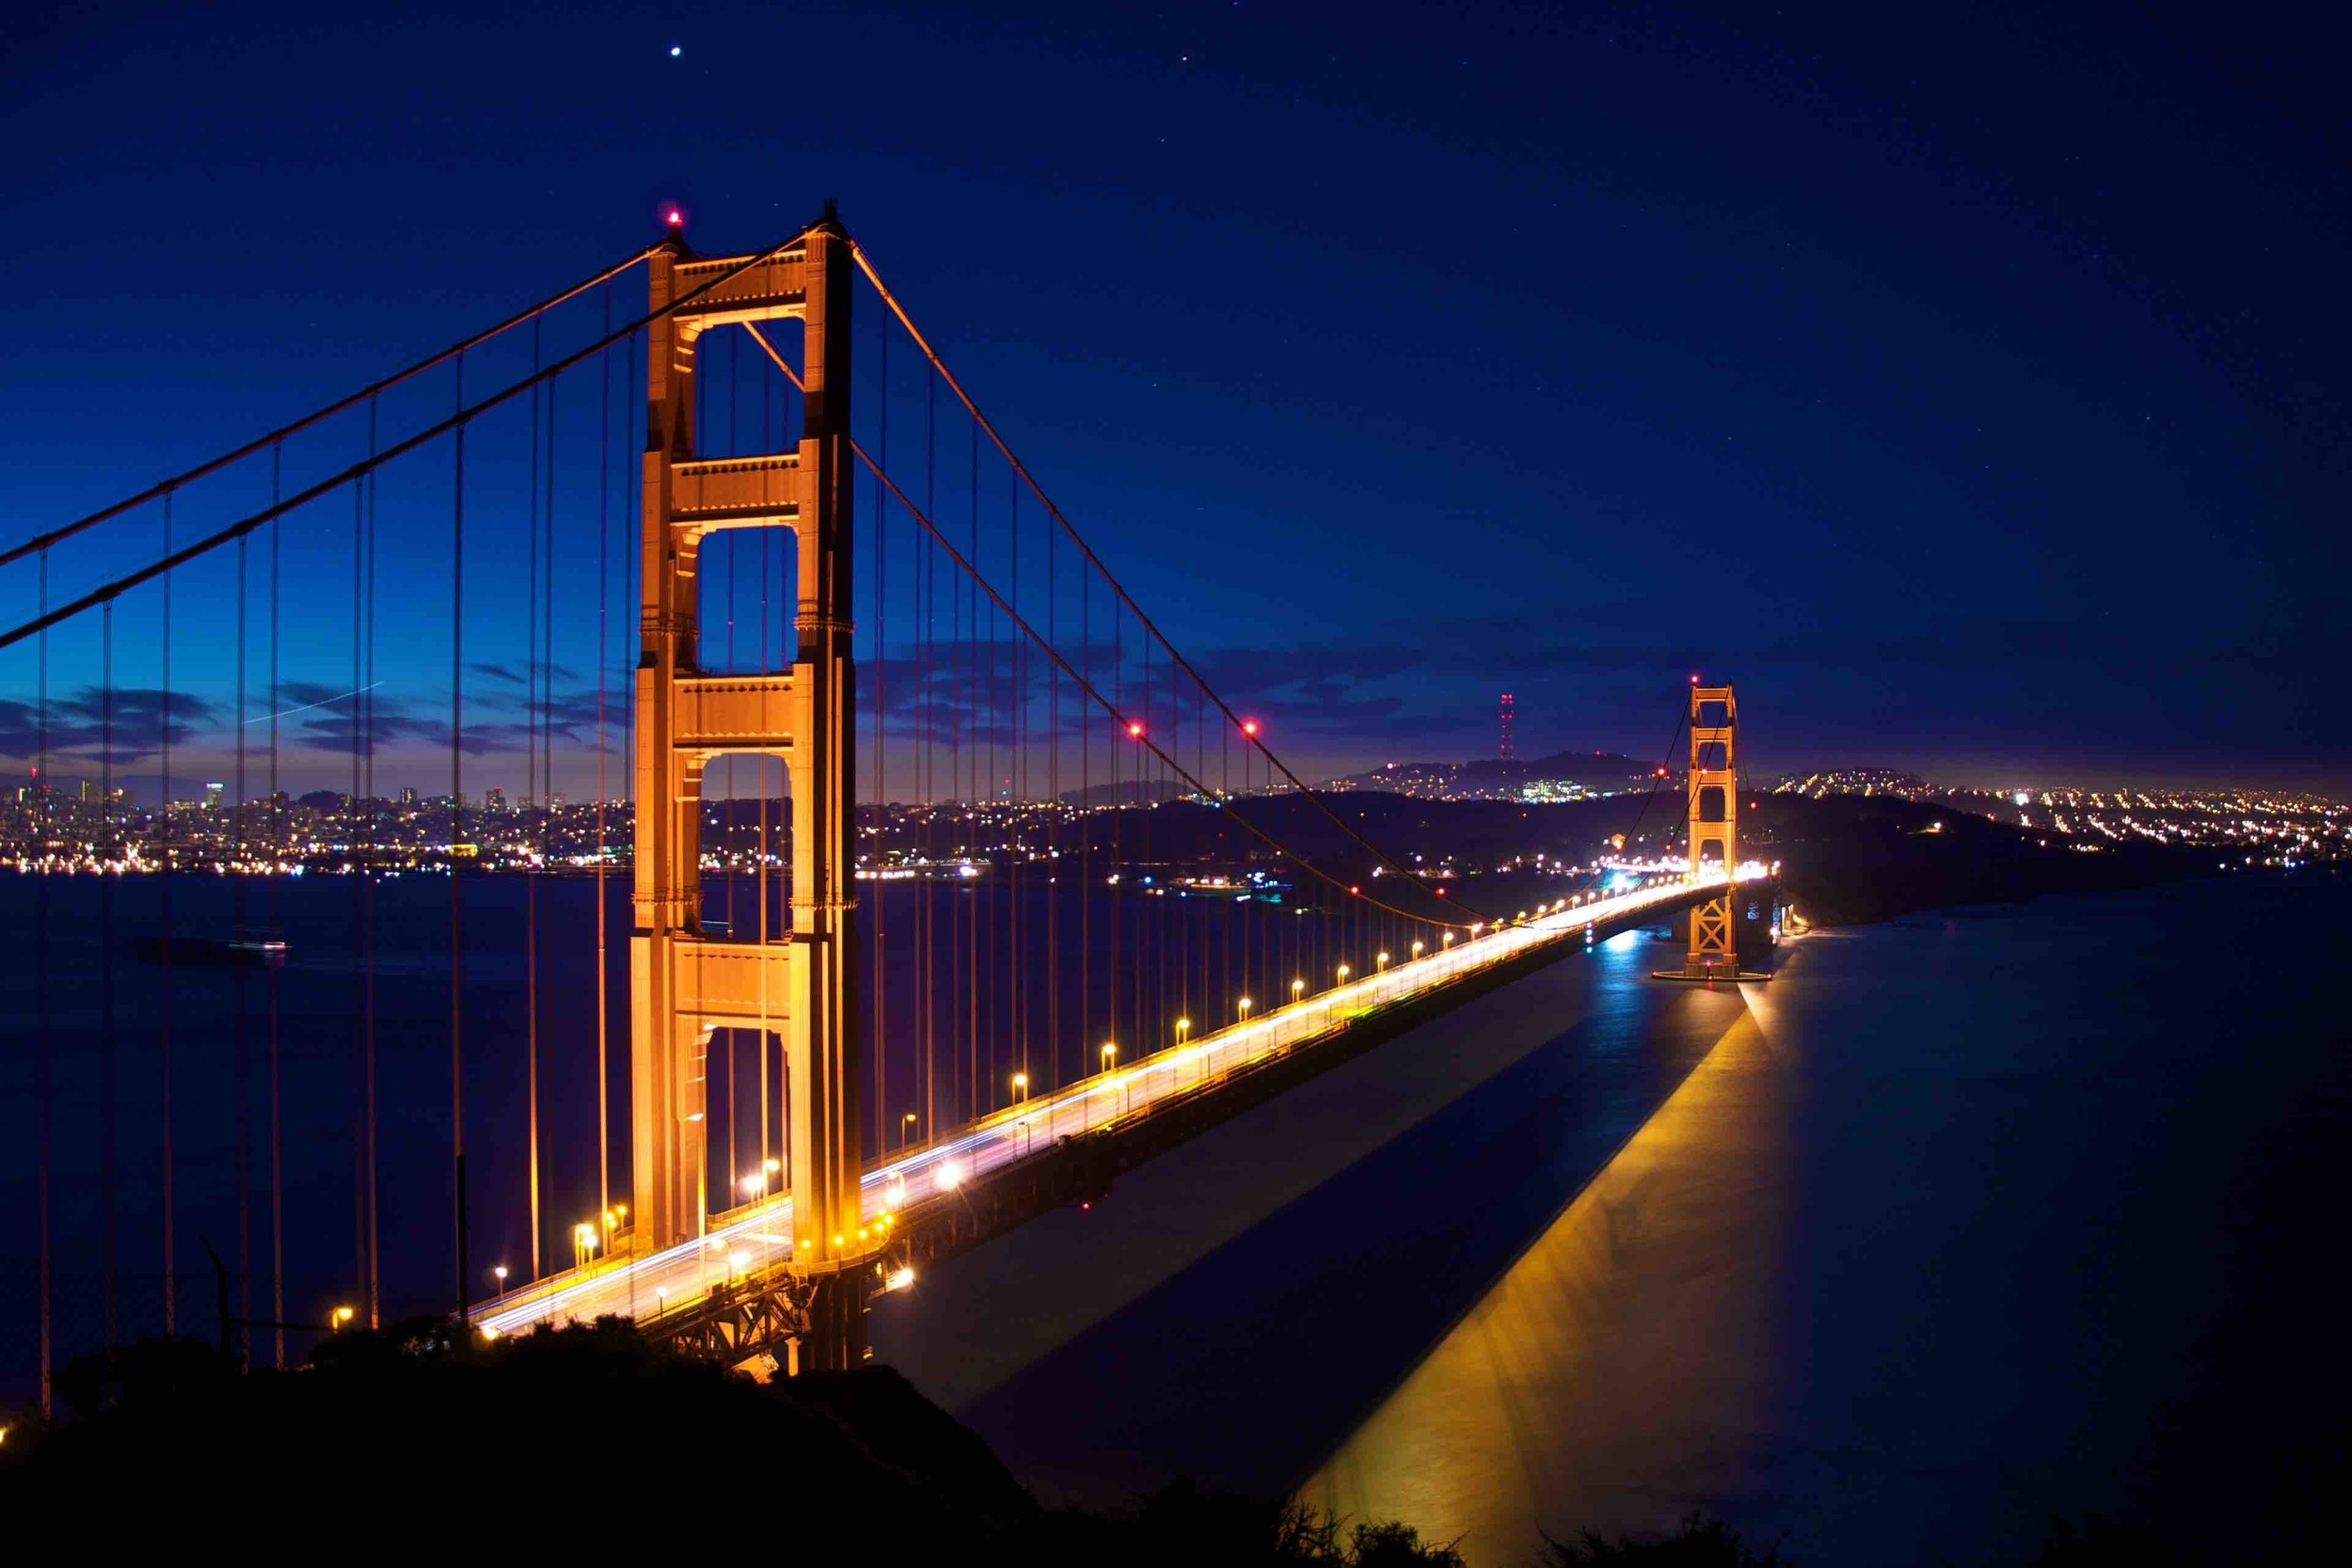 The Golden Gate is a strait on the west coast of North America that connects San Francisco Bay to the Pacific Ocean. It is defined by the headlands of the San Francisco Peninsula and the Marin Peninsula, and, since 1937, has been spanned by the Golden Gate Bridge.